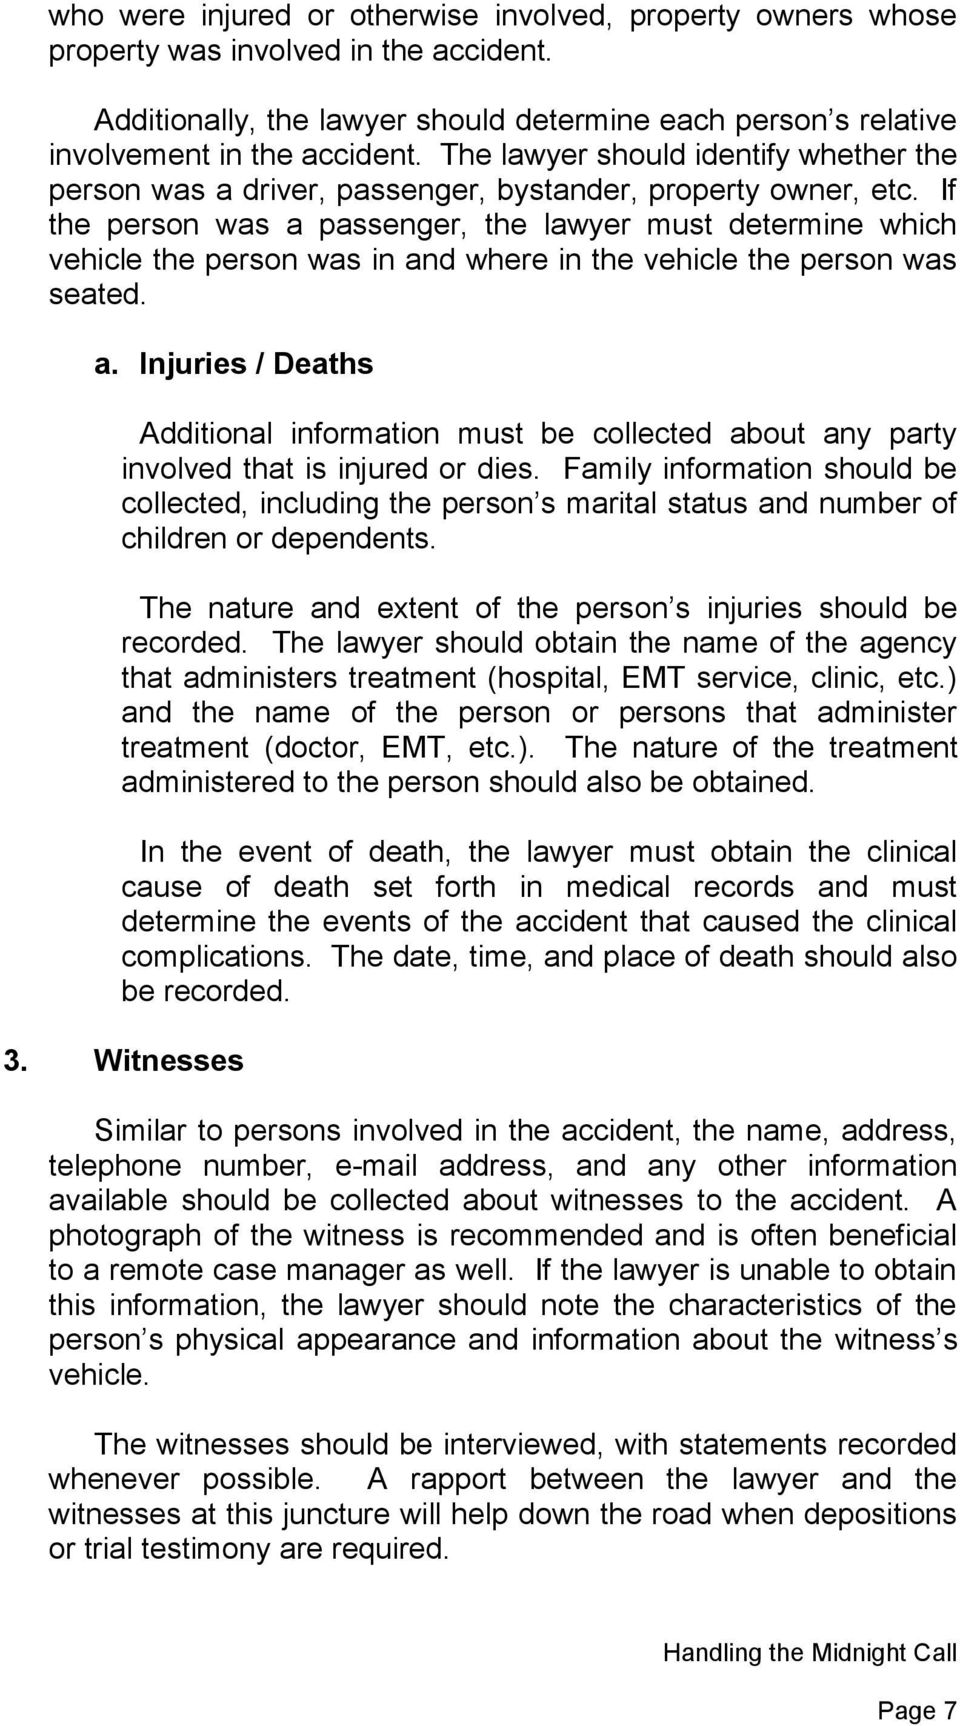 If the person was a passenger, the lawyer must determine which vehicle the person was in and where in the vehicle the person was seated. a. Injuries / Deaths Additional information must be collected about any party involved that is injured or dies.